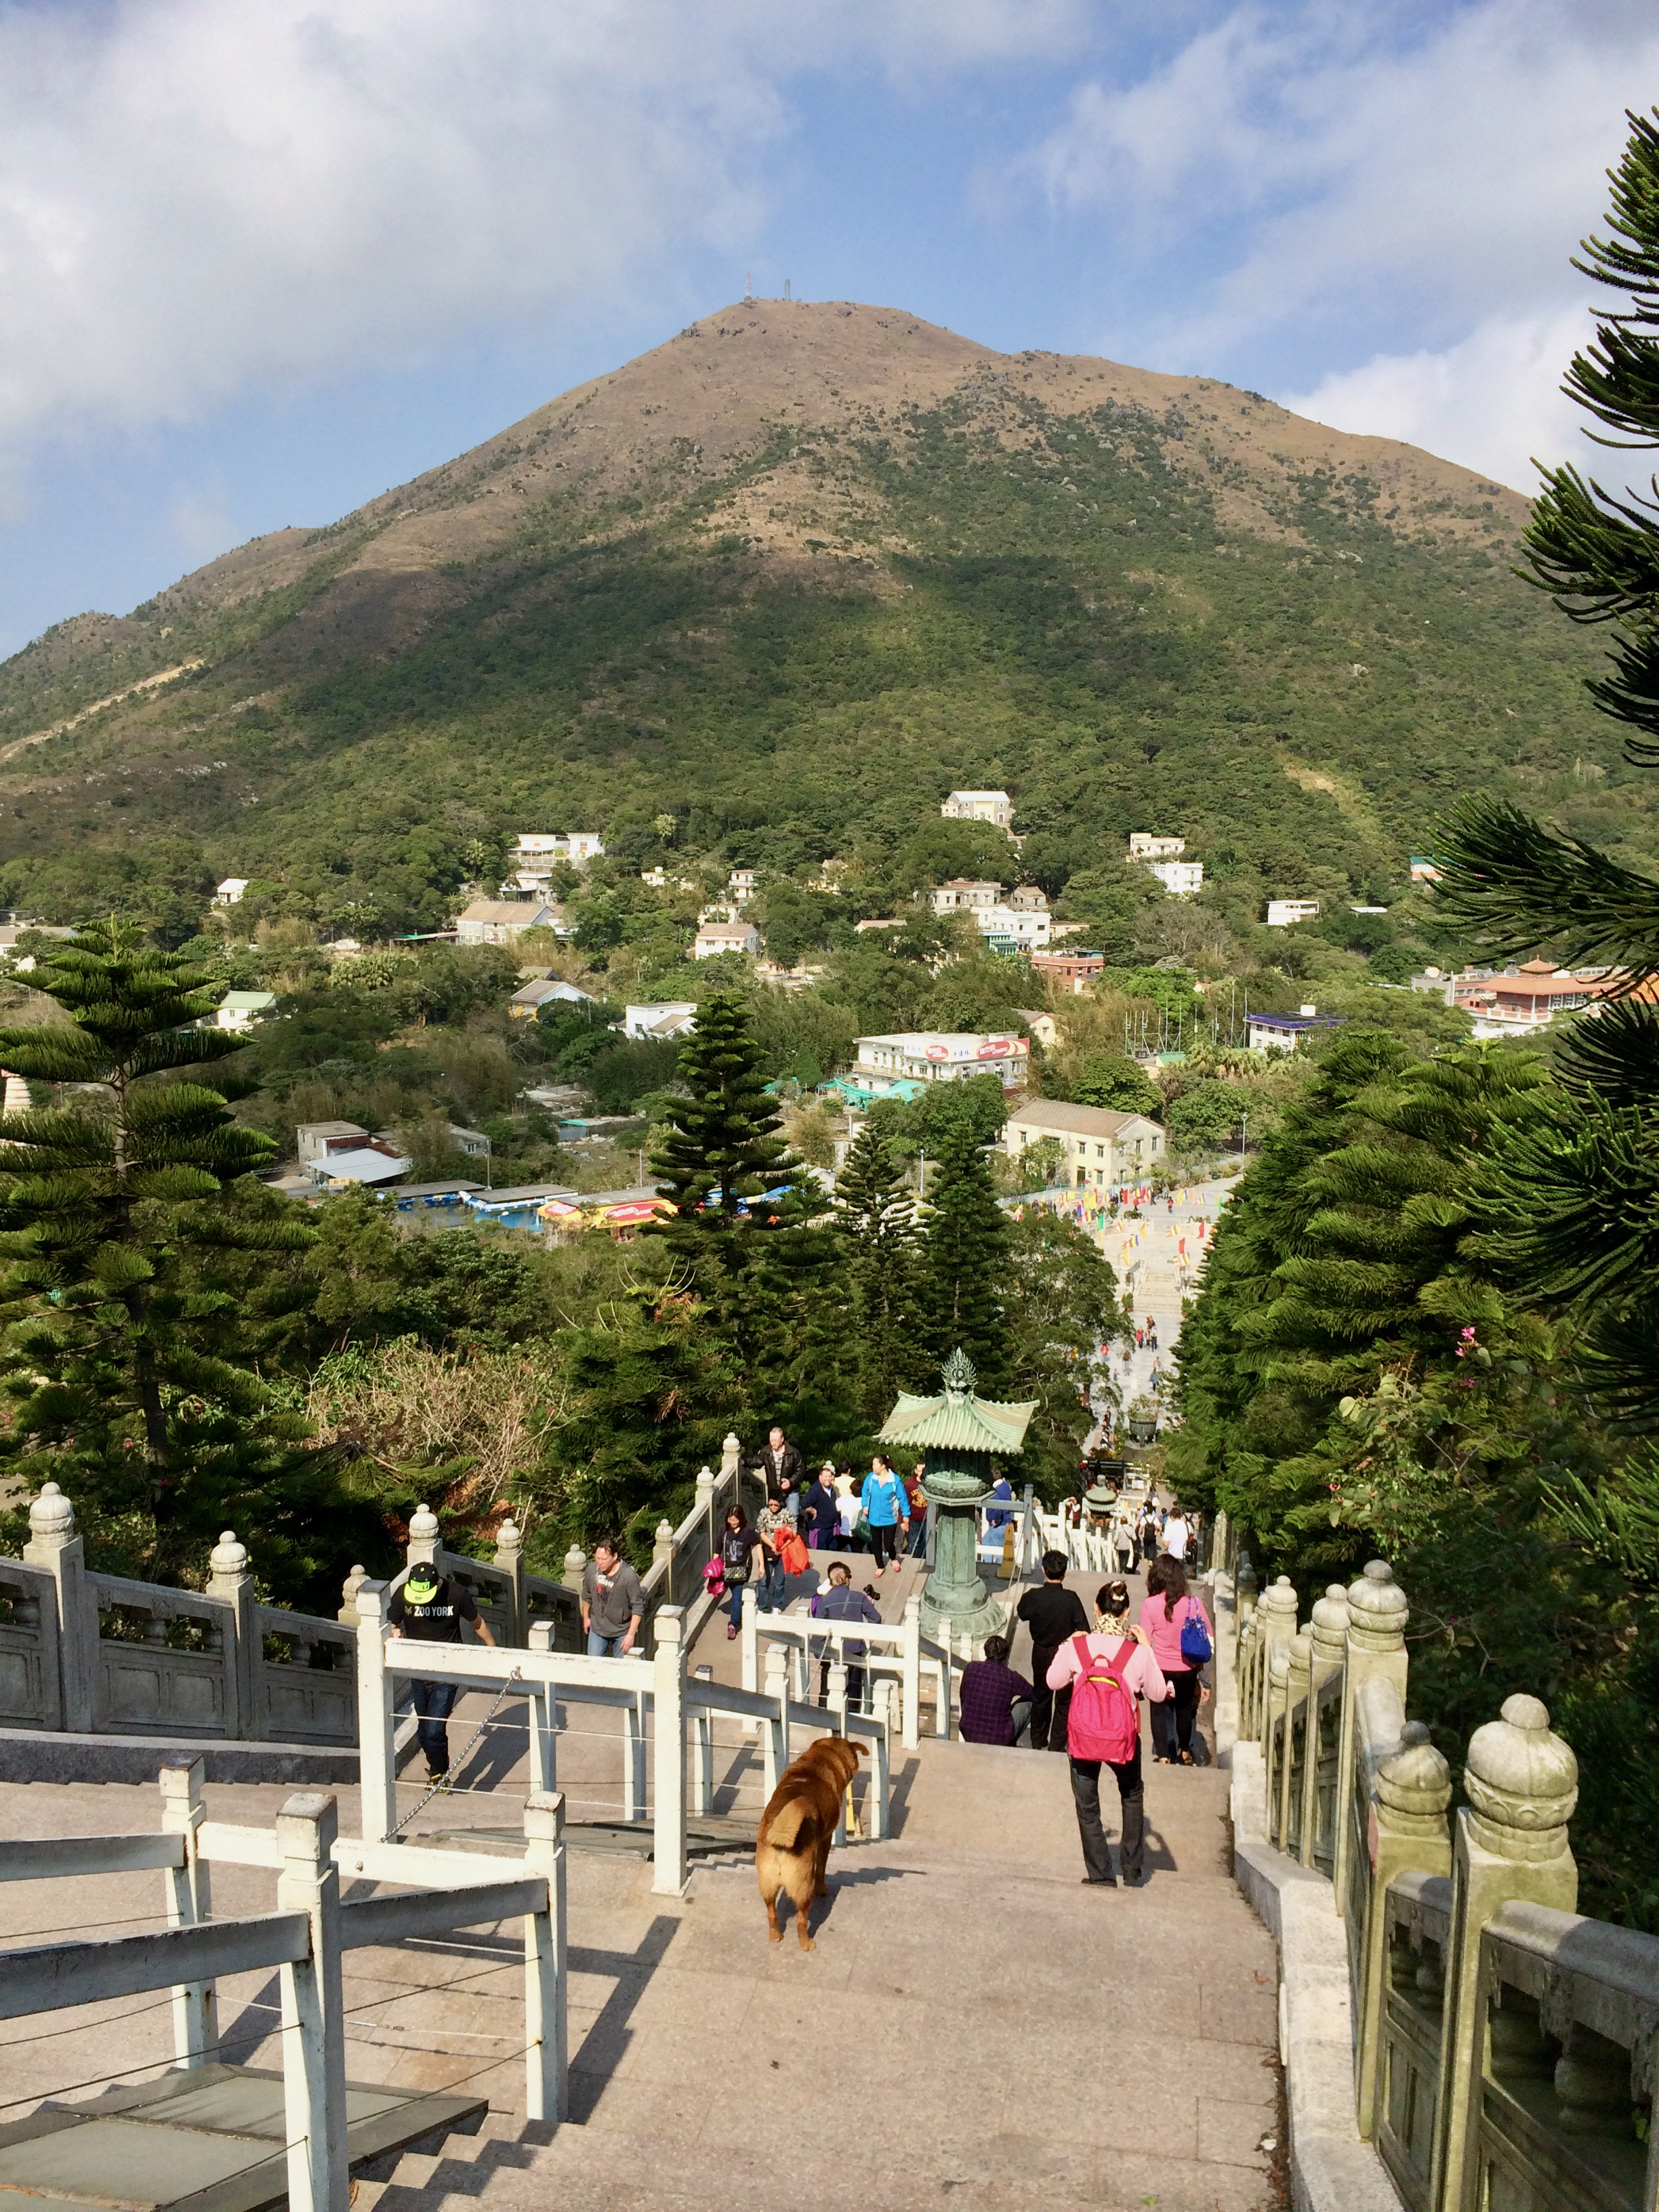 The 296 step climb was a good workout and very serene. However, there is also a small road for vehicles etc. so that any one with a physical disability is also able to visit.